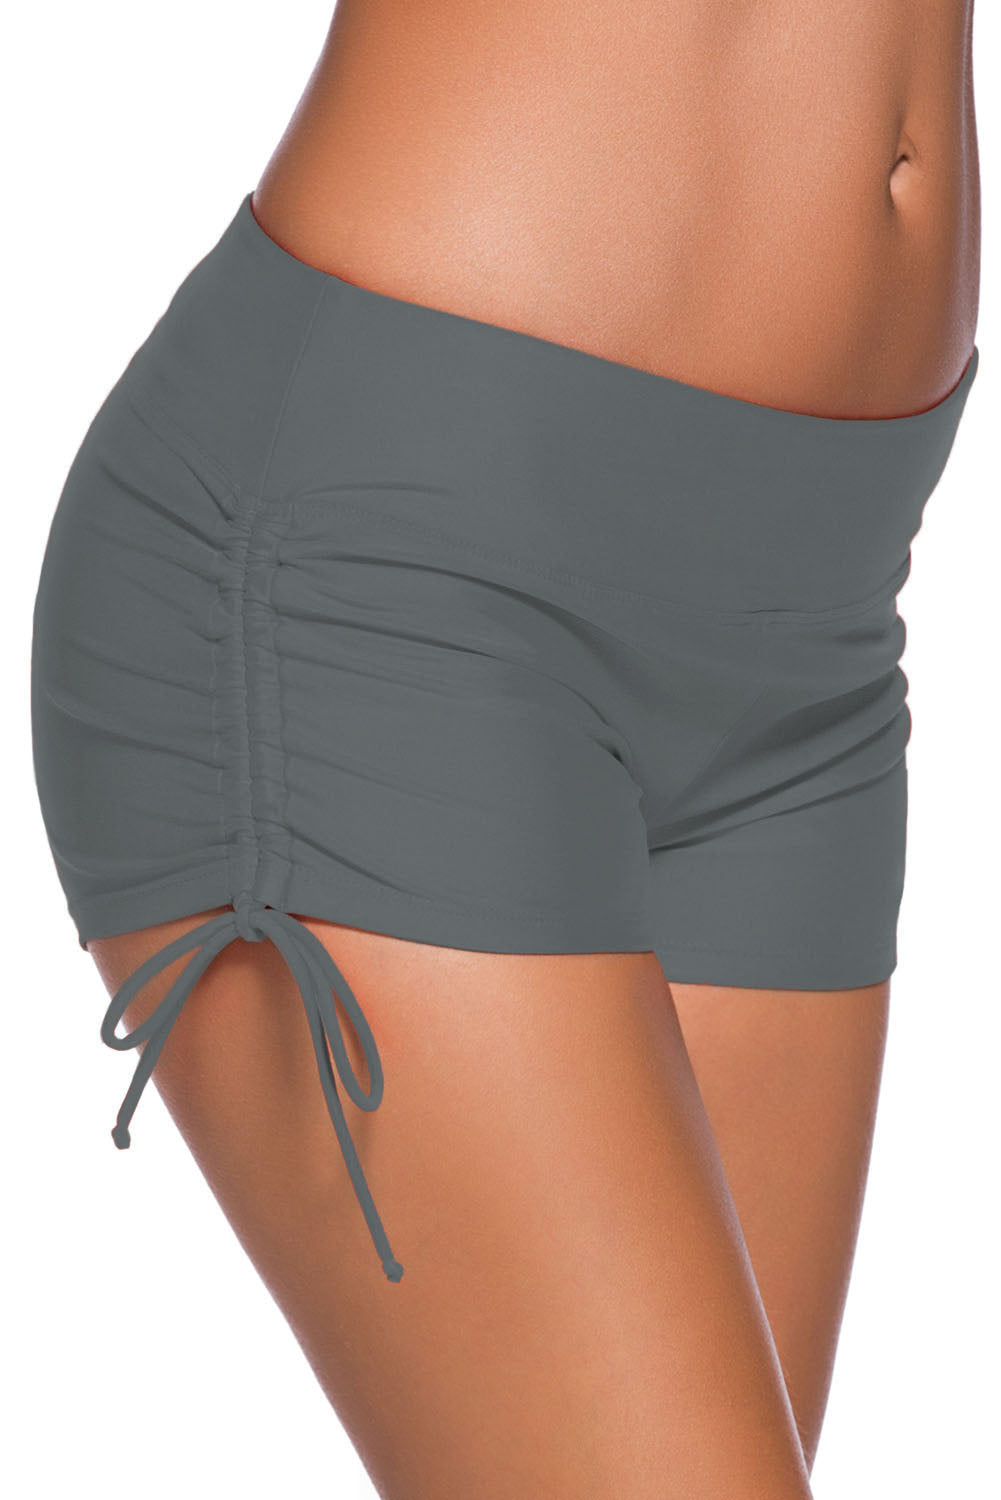 Adjustable Ties Swim Bottom Shorts - Online Women Bikini Bottoms